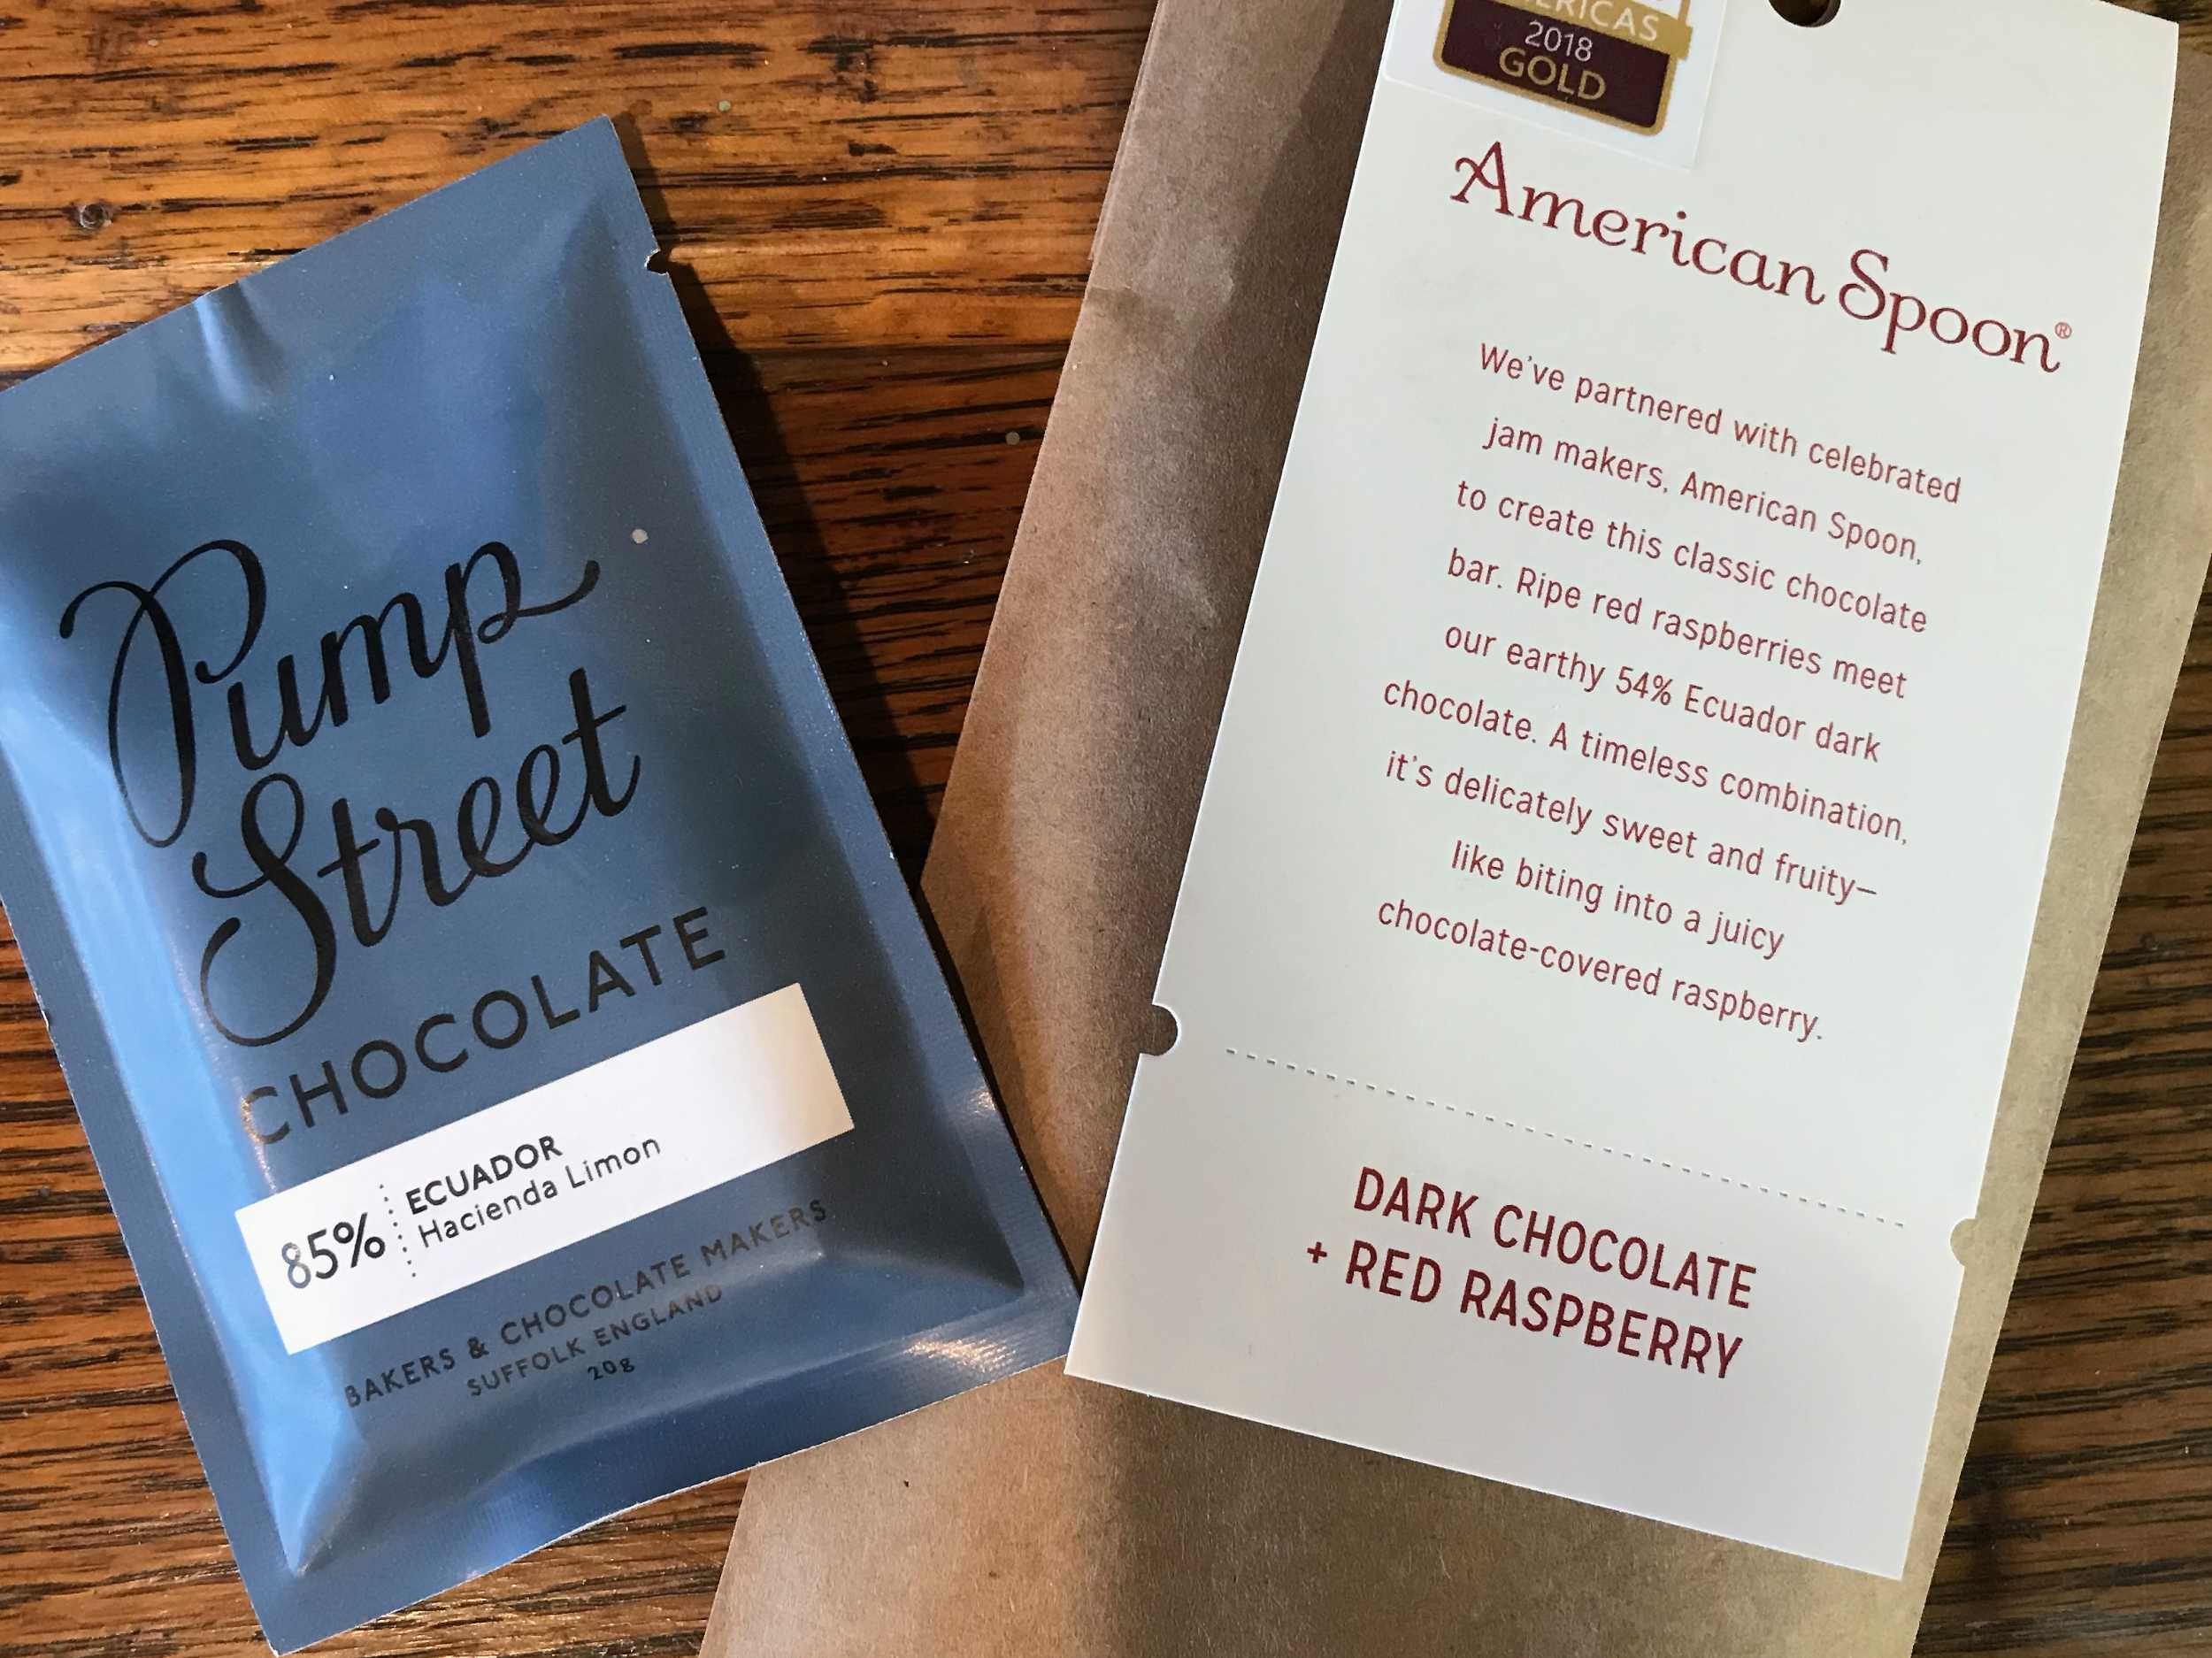 Pump Street from Ecuador and Dark Chocolate Red Raspberry from American Spoon.